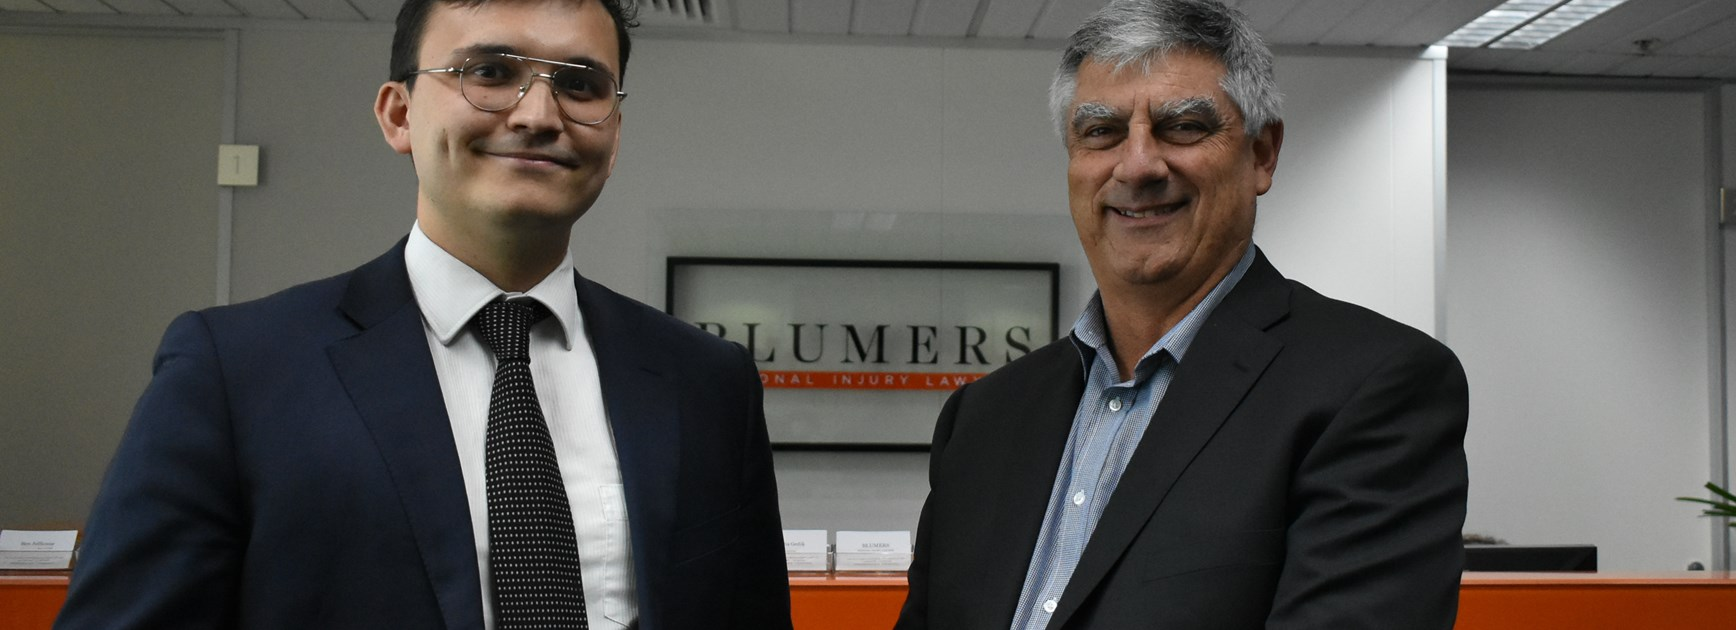 Blumers Lawyers Extend CRRL Sponsorship Deal